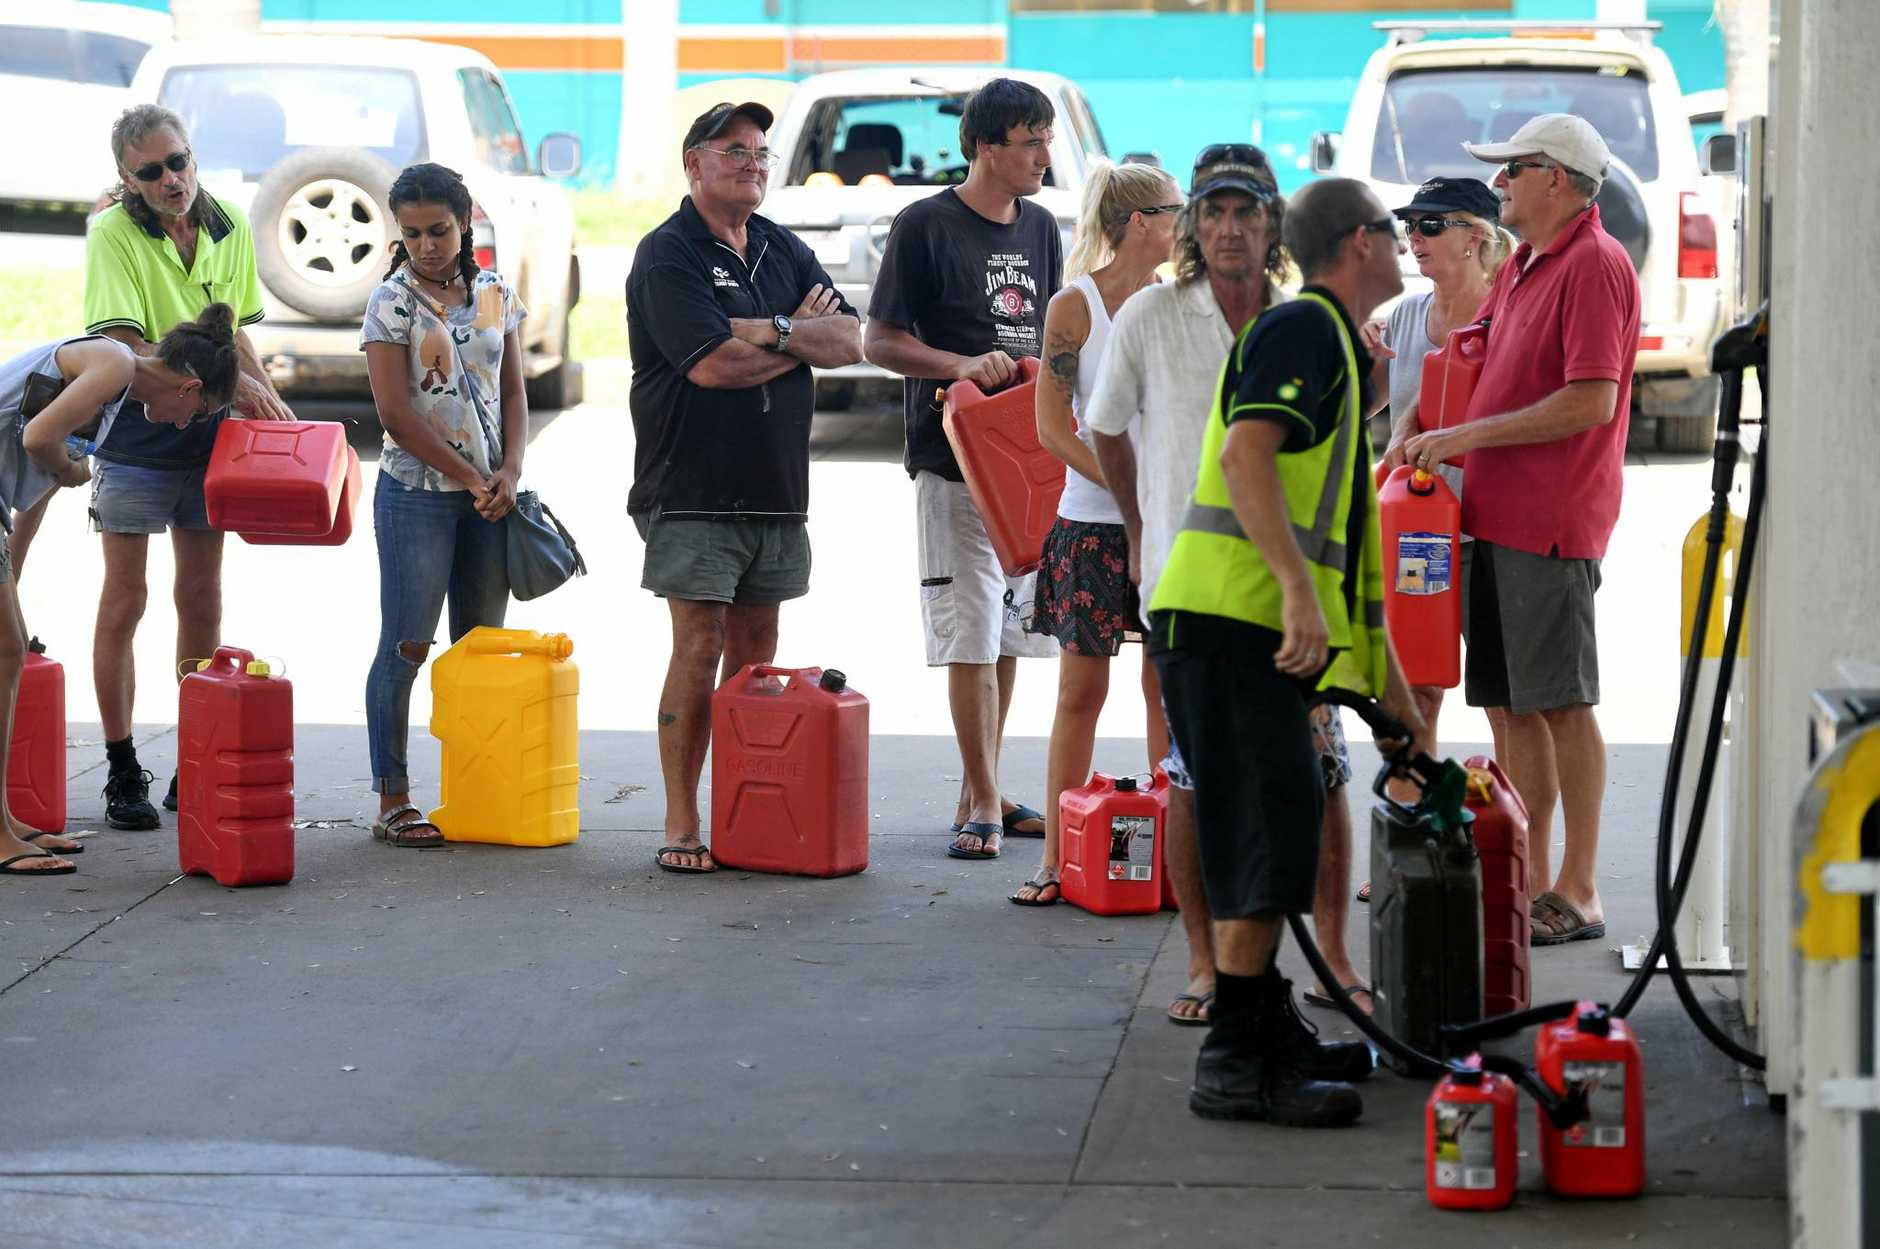 Locals queue up for petrol in Airlie Beach, Friday, March 31, 2017. Cyclone Debbie has hit Queensland's north coast on Tuesday as a category 4 cyclone, causing wide spread damage. (AAP Image/Dan Peled) NO ARCHIVING